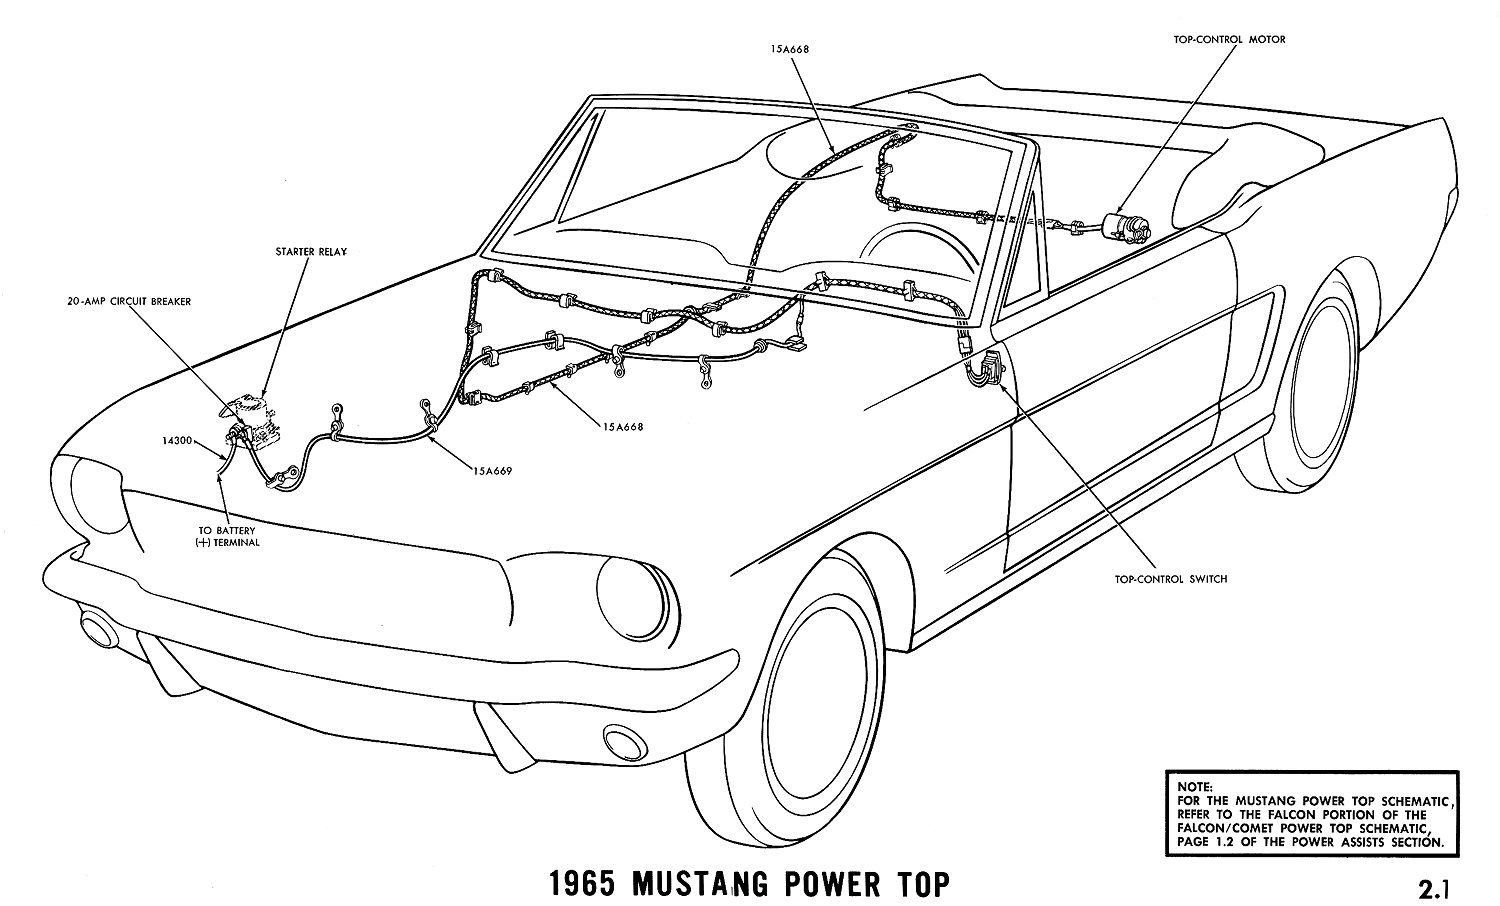 1965j 1965 mustang wiring diagrams average joe restoration 1969 mustang alternator wiring diagram at eliteediting.co